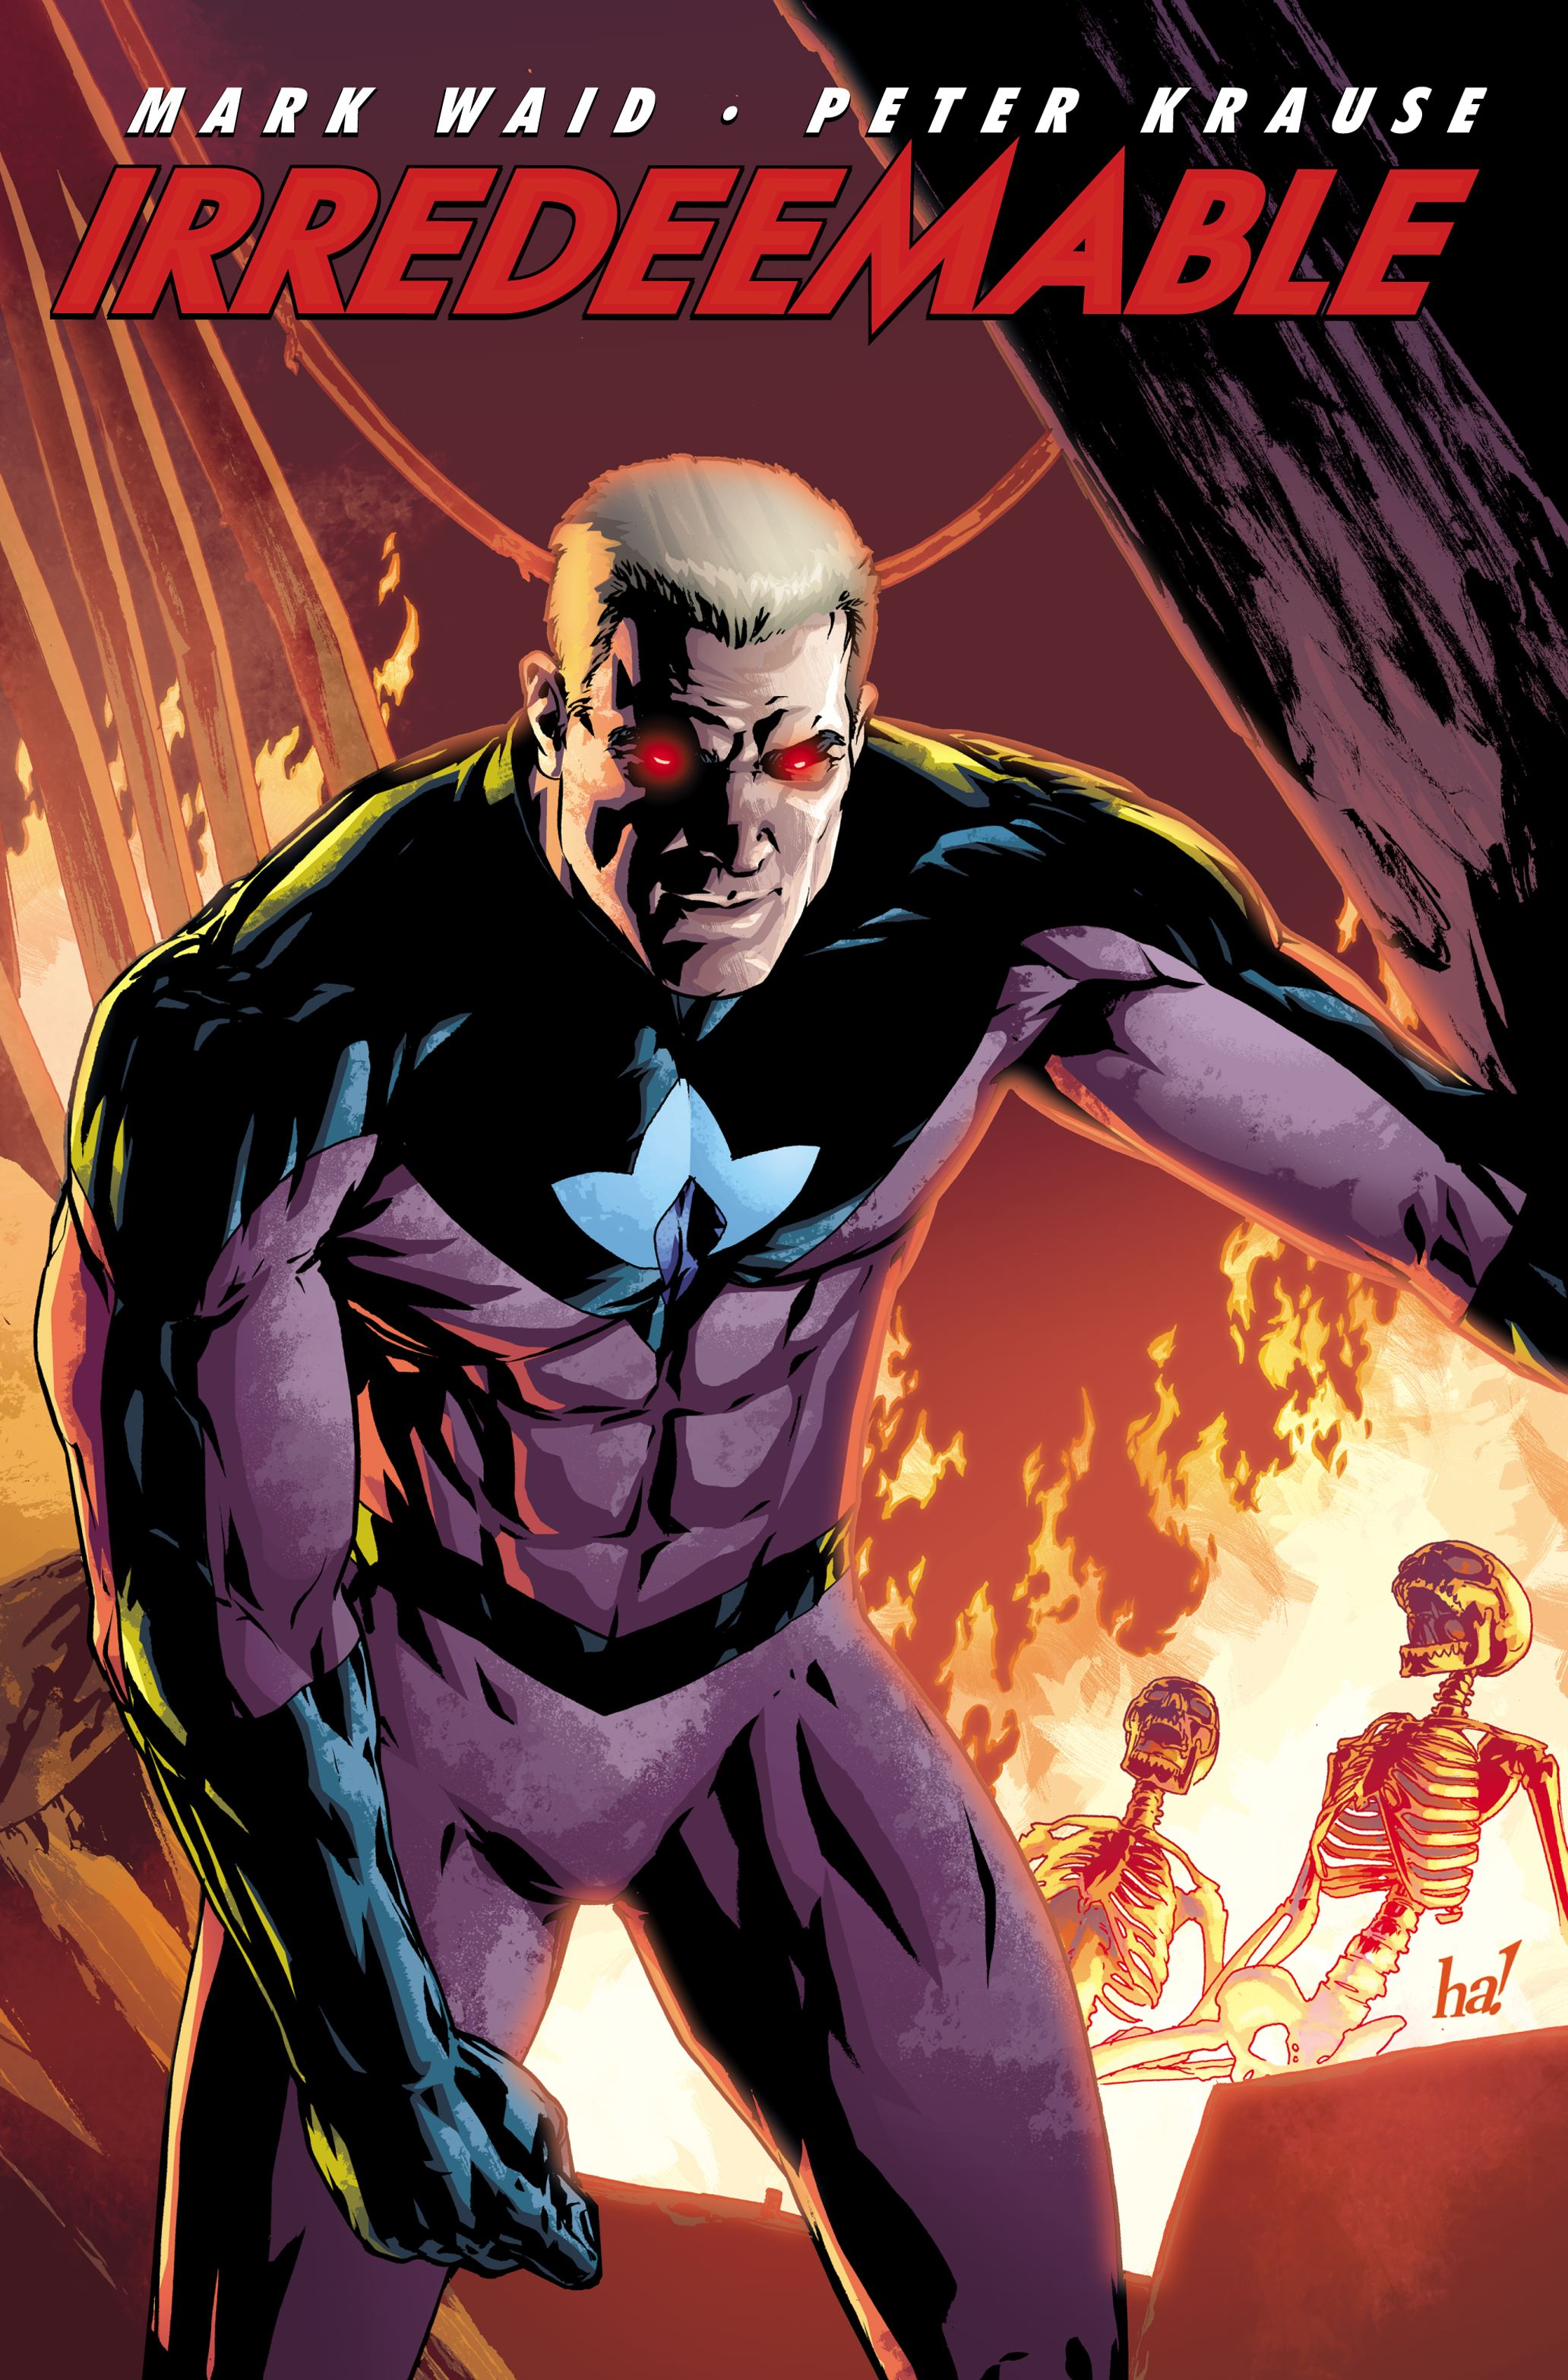 Irredeemable-vol-2-9781608860005_hr